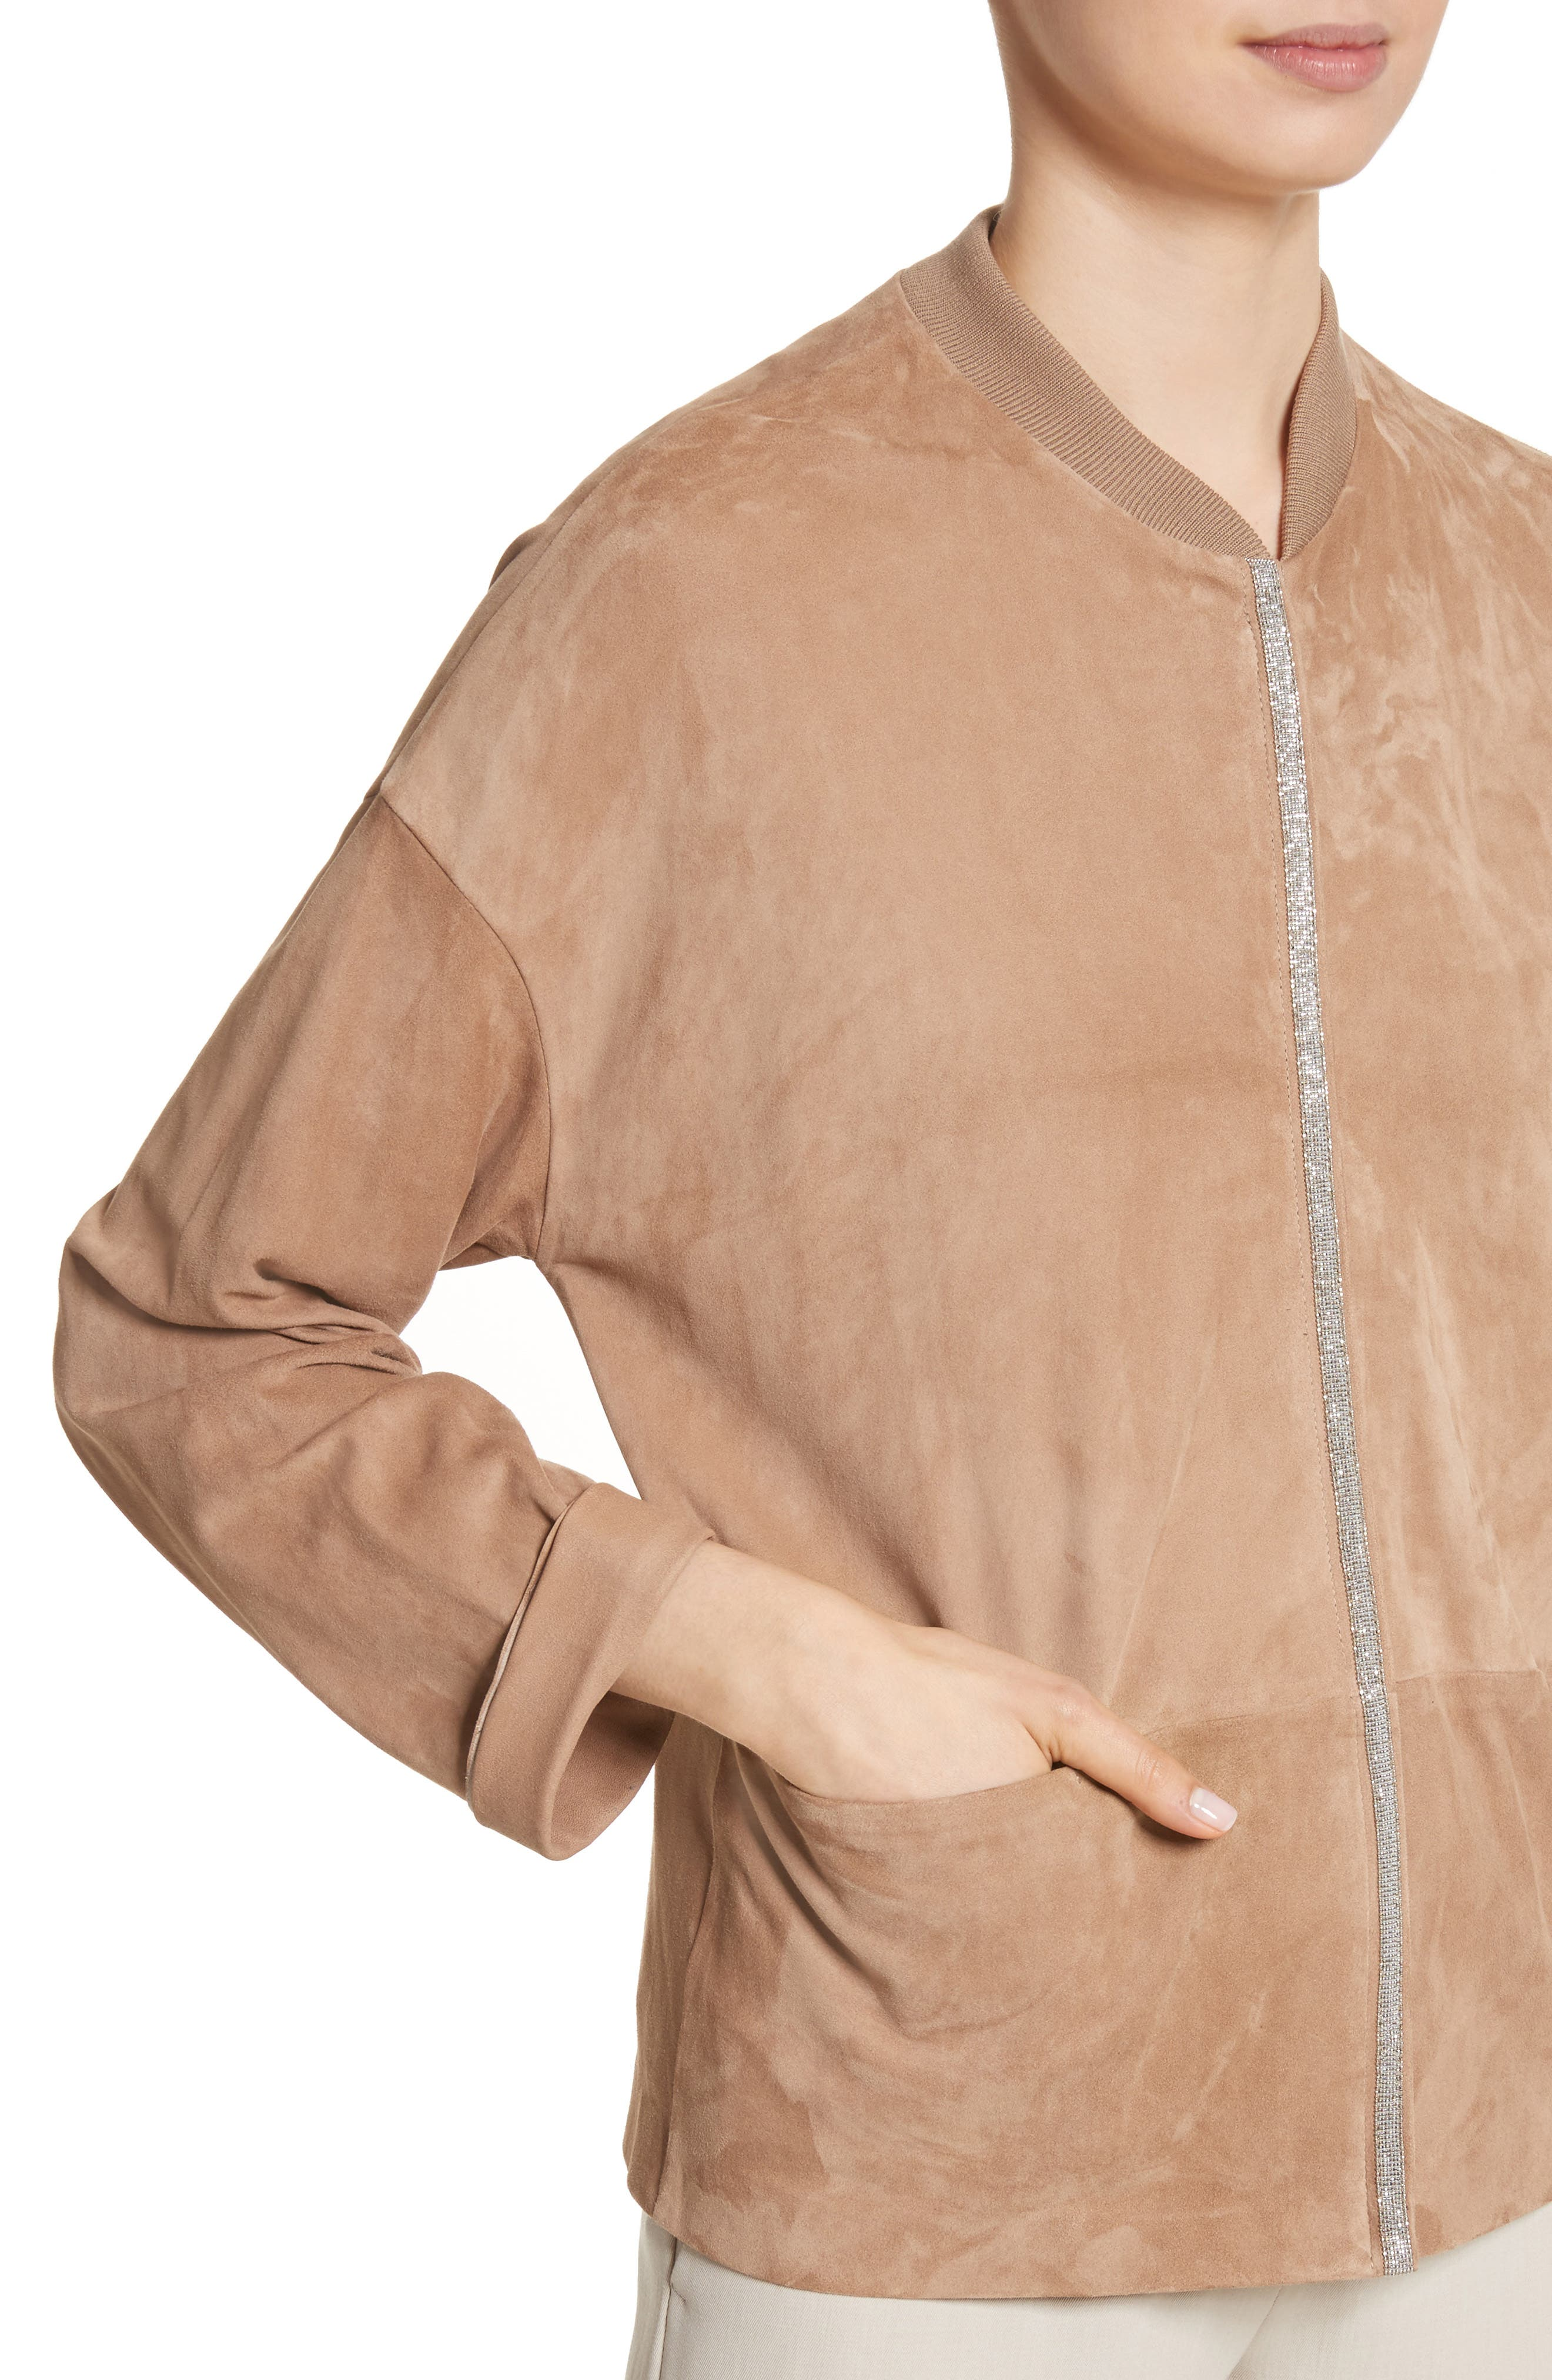 Beaded Suede Jacket,                             Alternate thumbnail 4, color,                             200